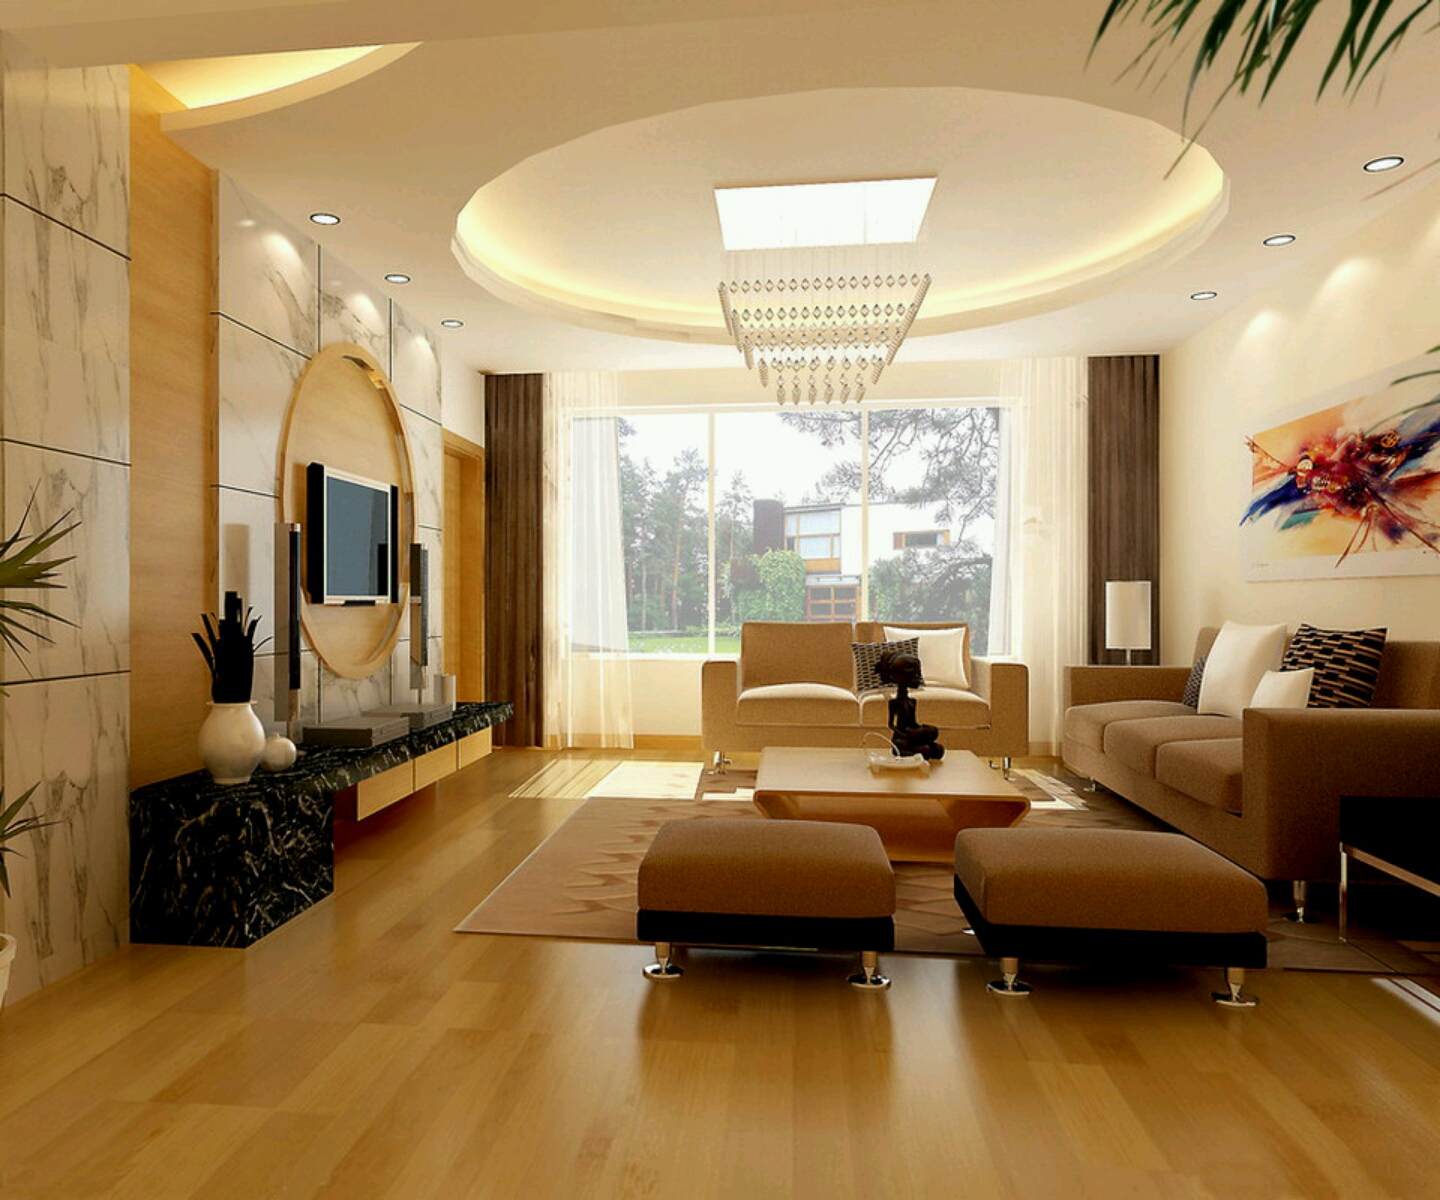 Modern interior decoration living rooms ceiling designs for Drawing room decoration ideas